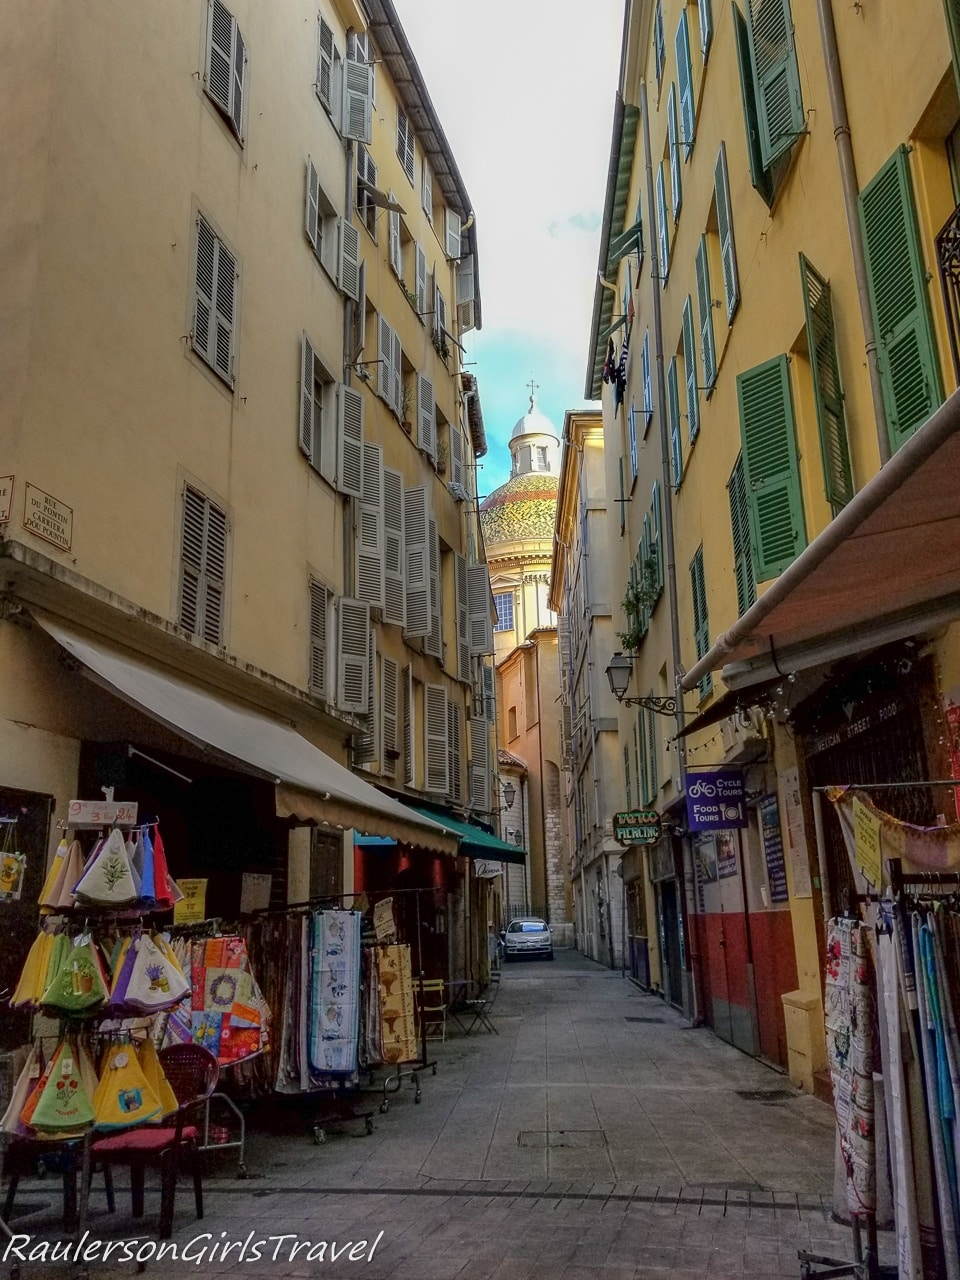 Streets in Nice